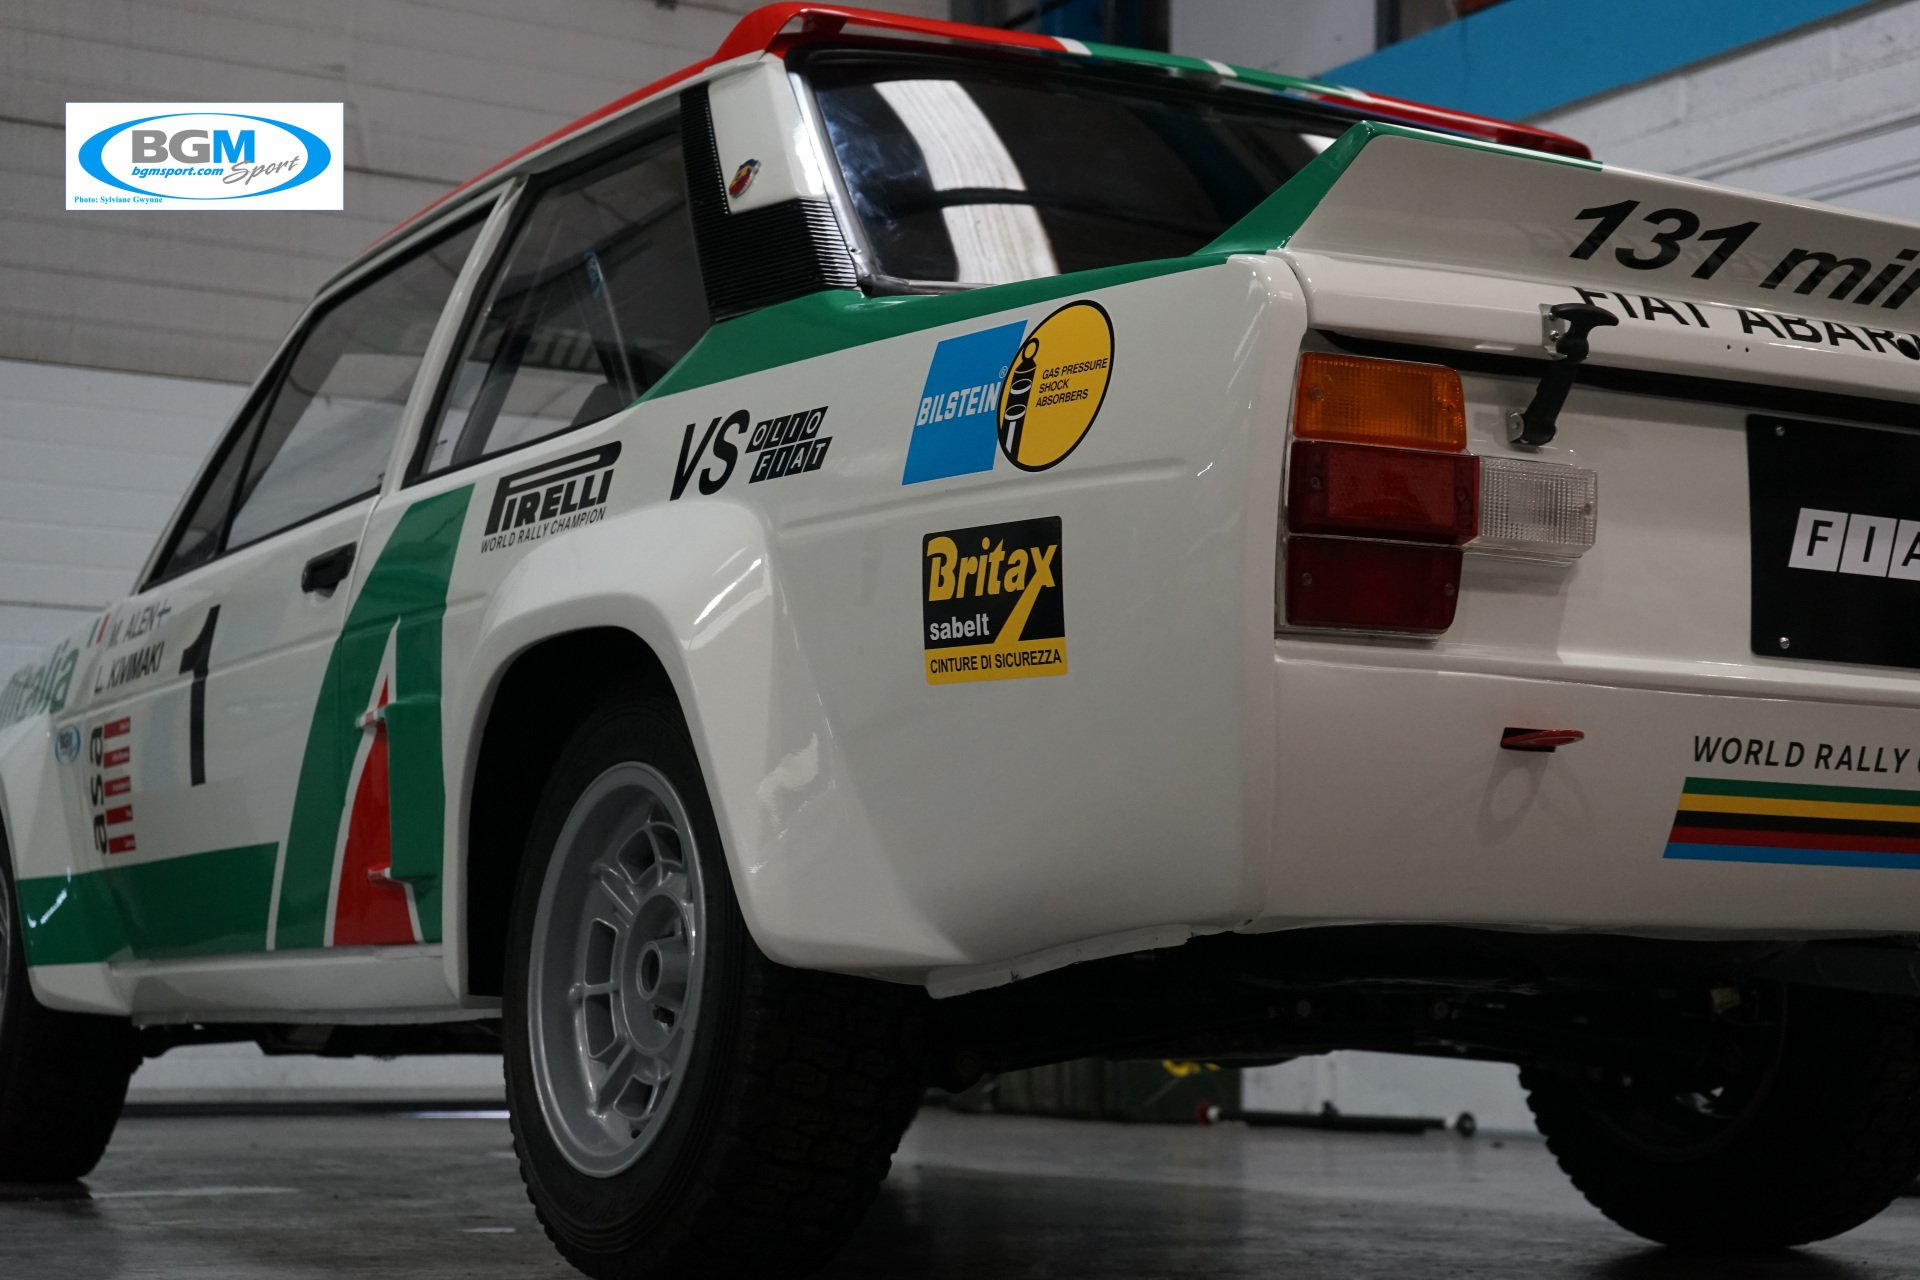 fiat-131-abarth-grp-4-rally-car-36